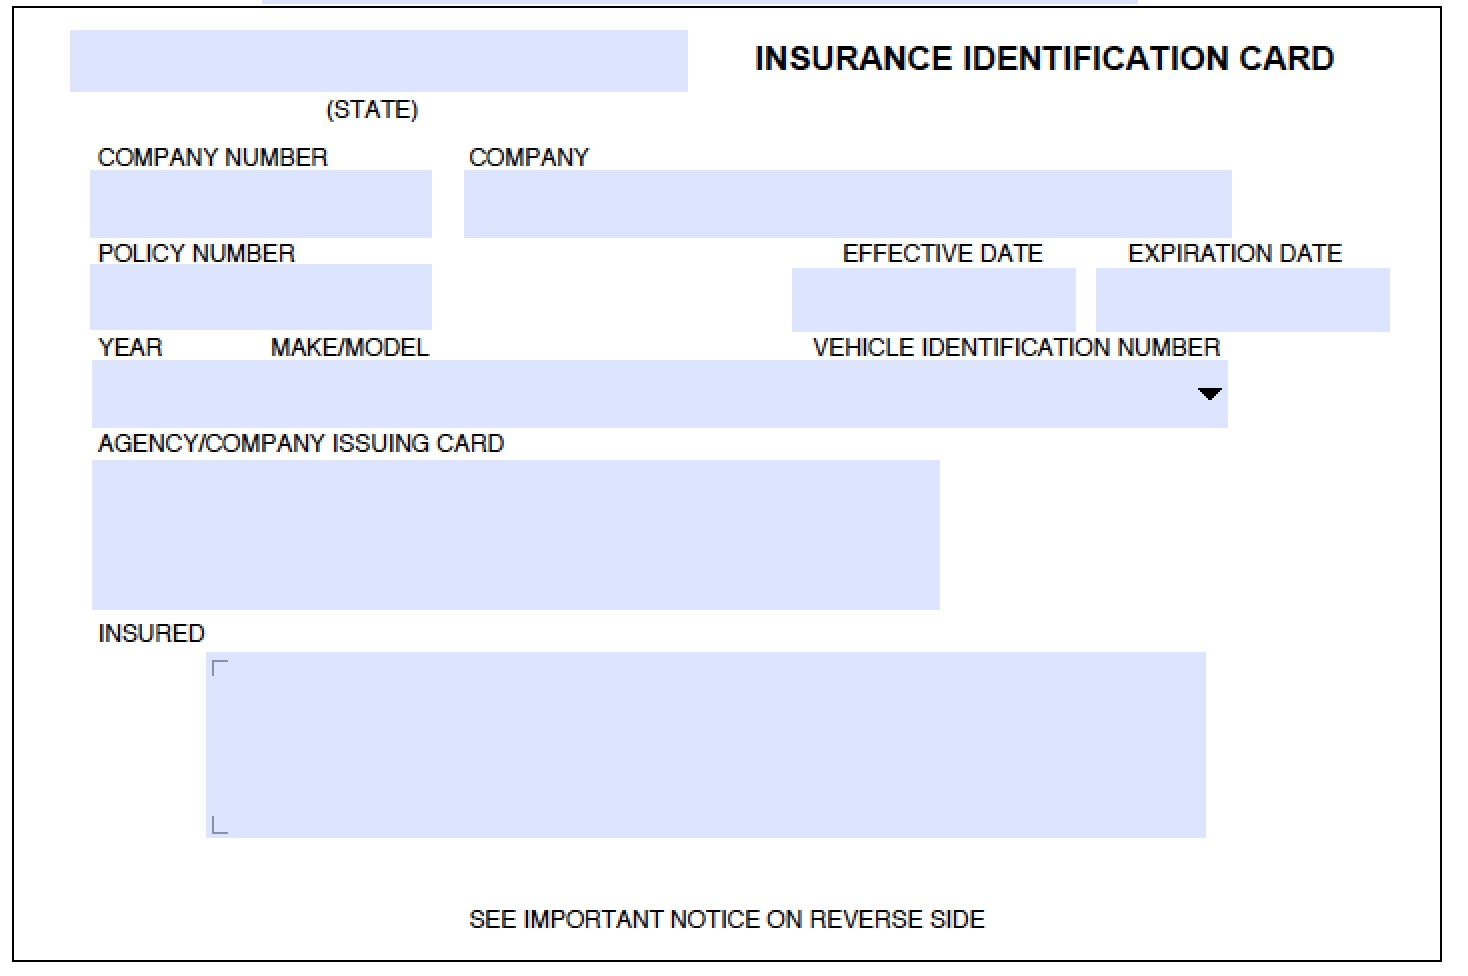 fake insurance template  Download Auto Insurance Card Template wikiDownload